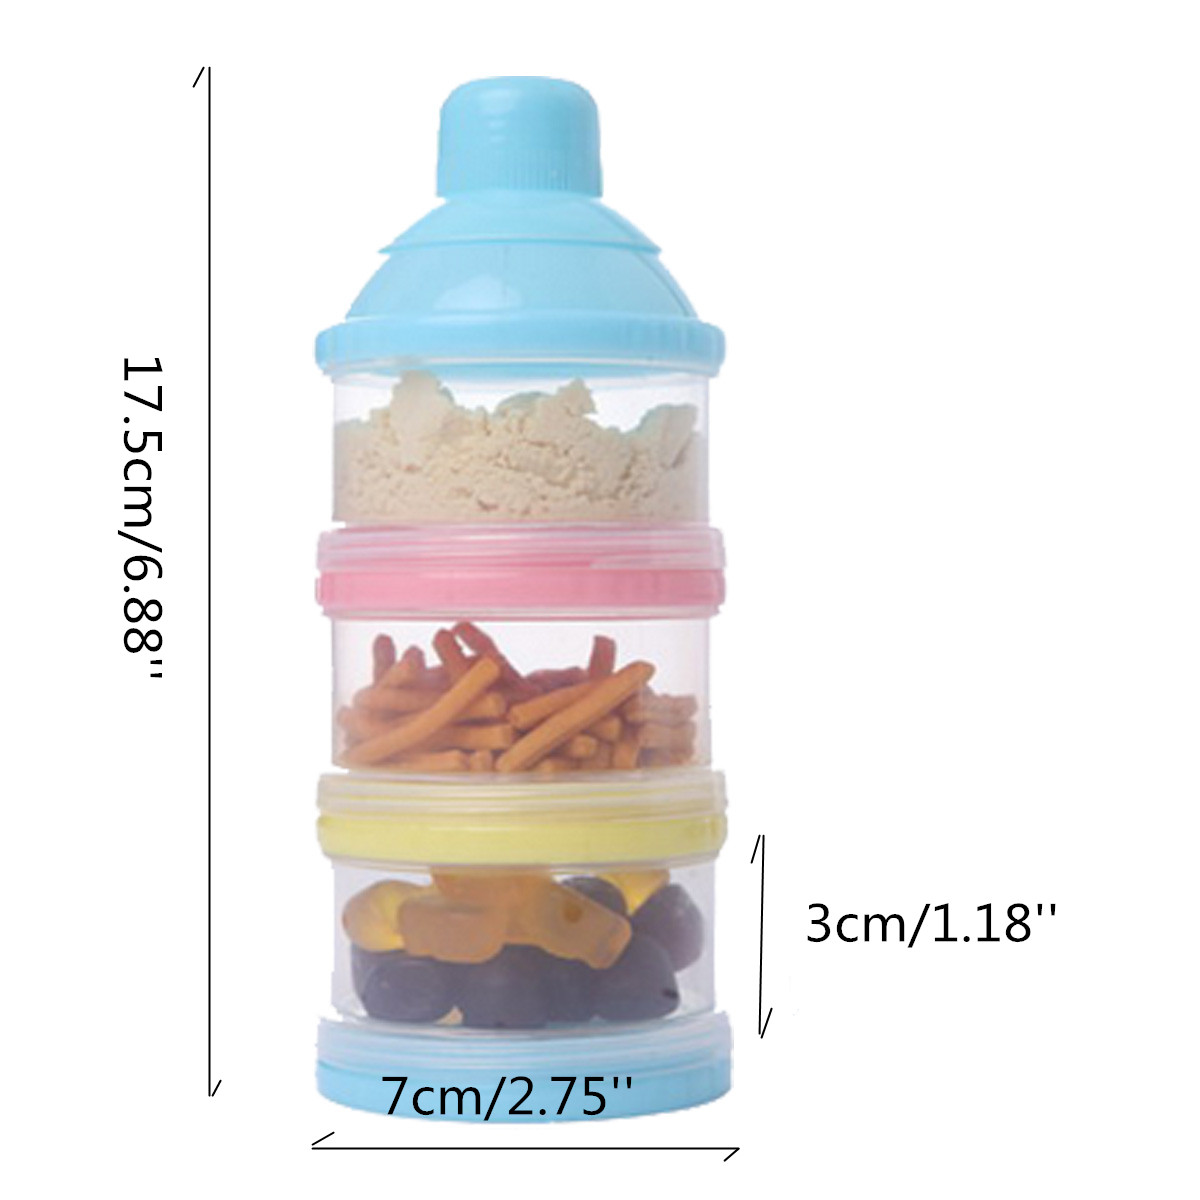 3 Layer Portable Container Infant Food Milk Feeding Powder Dispenser Bottle Baby Travel Storage Box Products-in Baby Food Storage from Mother u0026 Kids on ...  sc 1 st  AliExpress.com & 3 Layer Portable Container Infant Food Milk Feeding Powder Dispenser Bottle Baby Travel Storage Box Products-in Baby Food Storage from Mother u0026 Kids ...